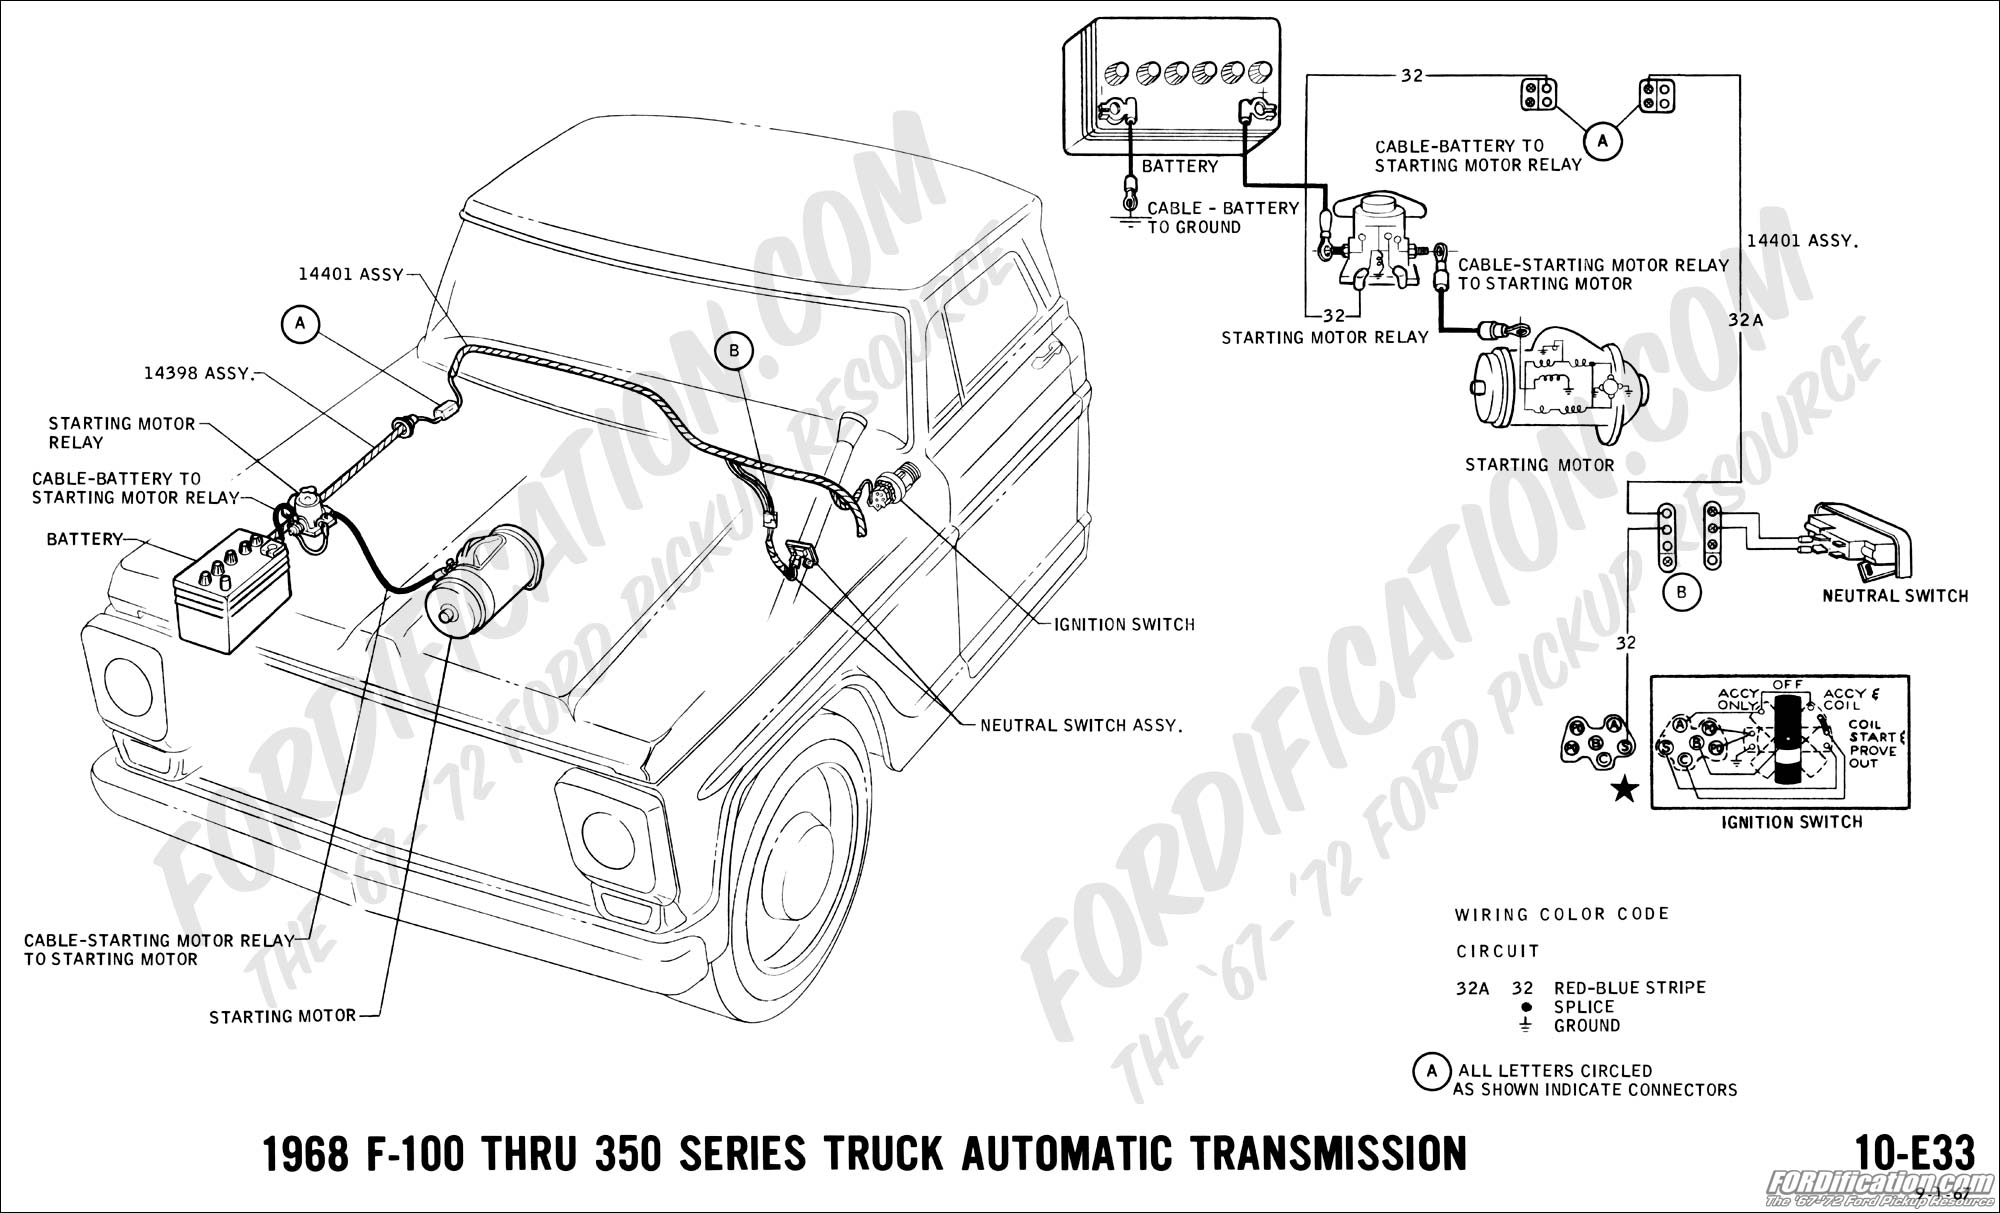 Volvo Penta Engine Wiring Diagram On 7 4 Mercruiser likewise Showthread as well  additionally Pre Alpha Mercruiser Wiring Diagram as well Wiring Harness For Older Volvo. on 10 pin mercruiser wiring harness adapter